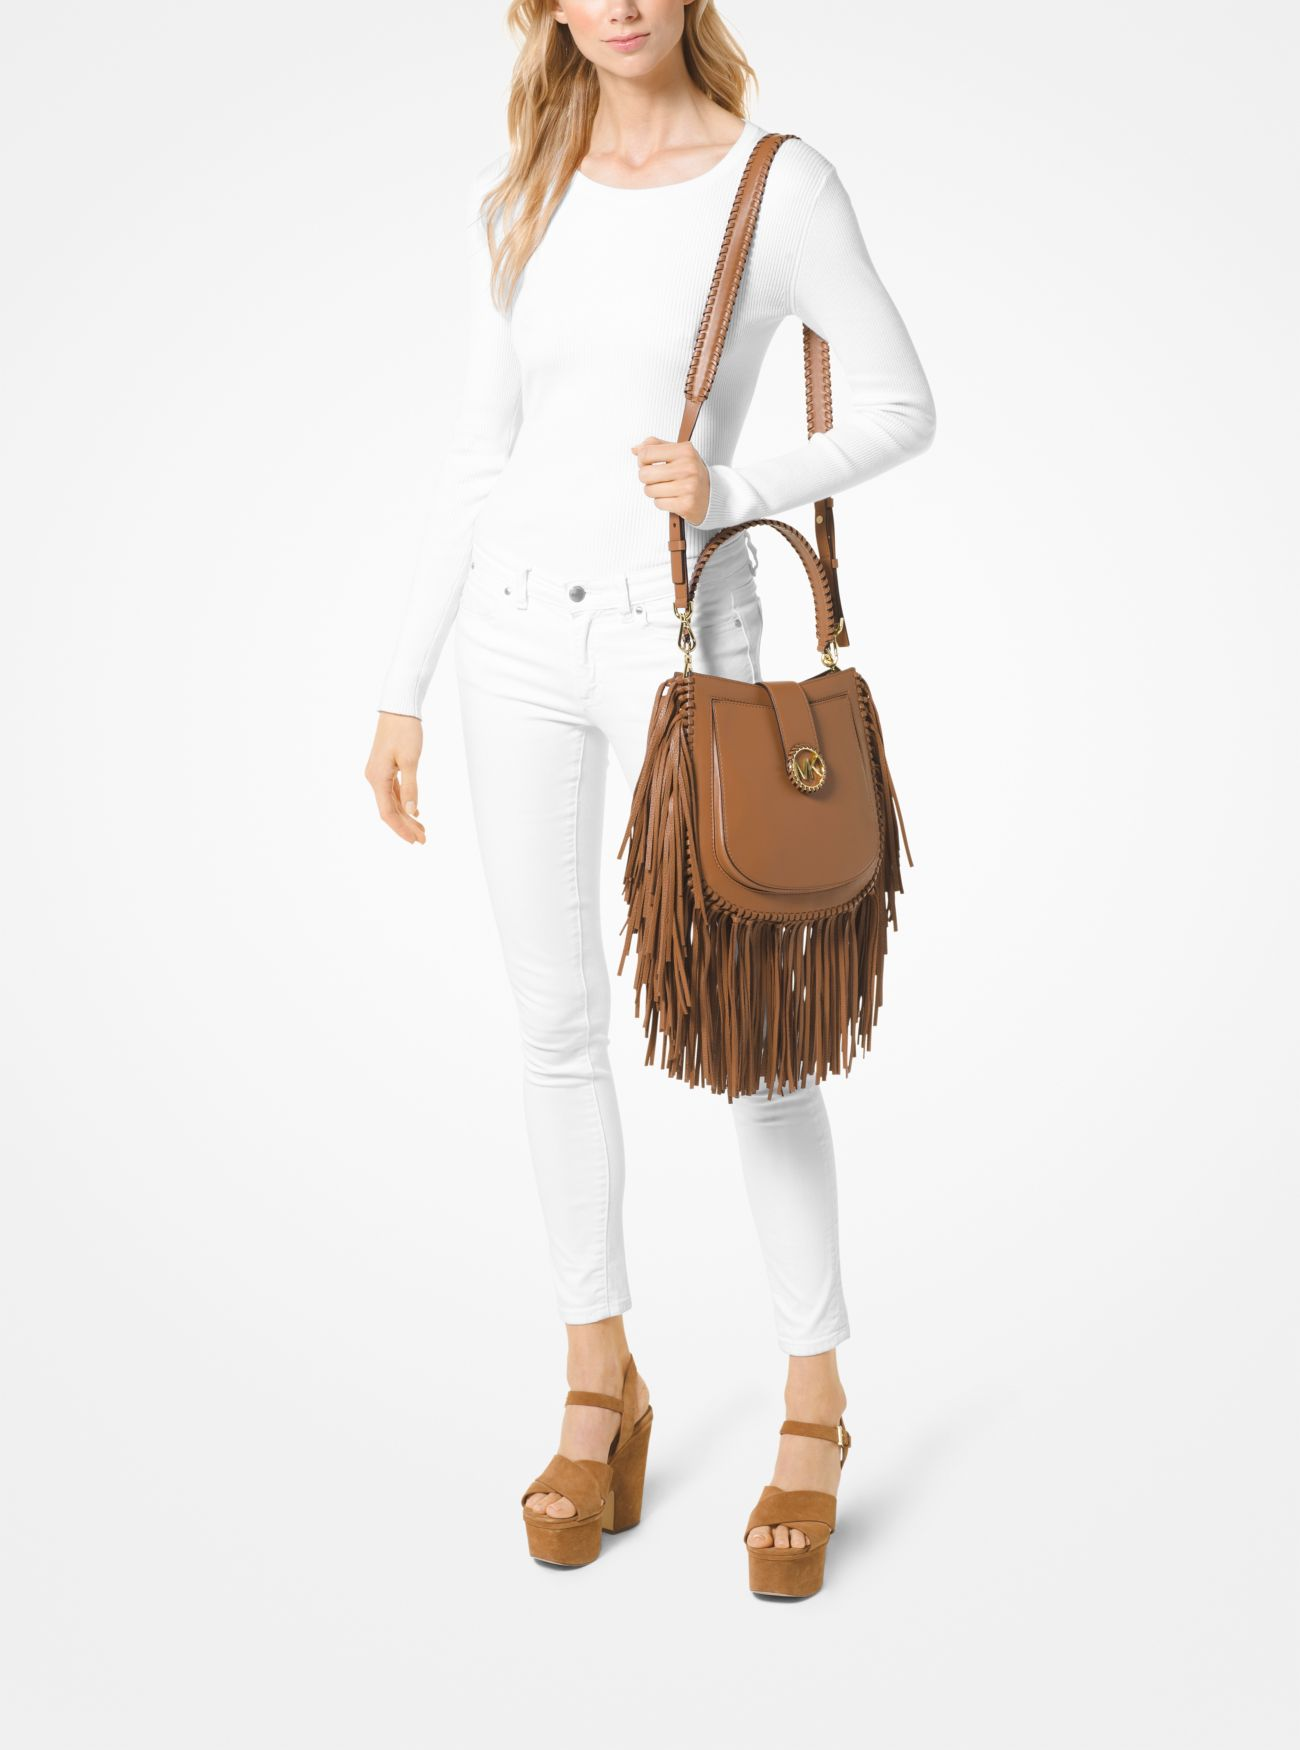 297a3ca3e8ec ... Lillie Medium Fringed Leather Shoulder Bag Lillie Medium Fringed Leather  Shoulder Bag. MICHAEL Michael Kors